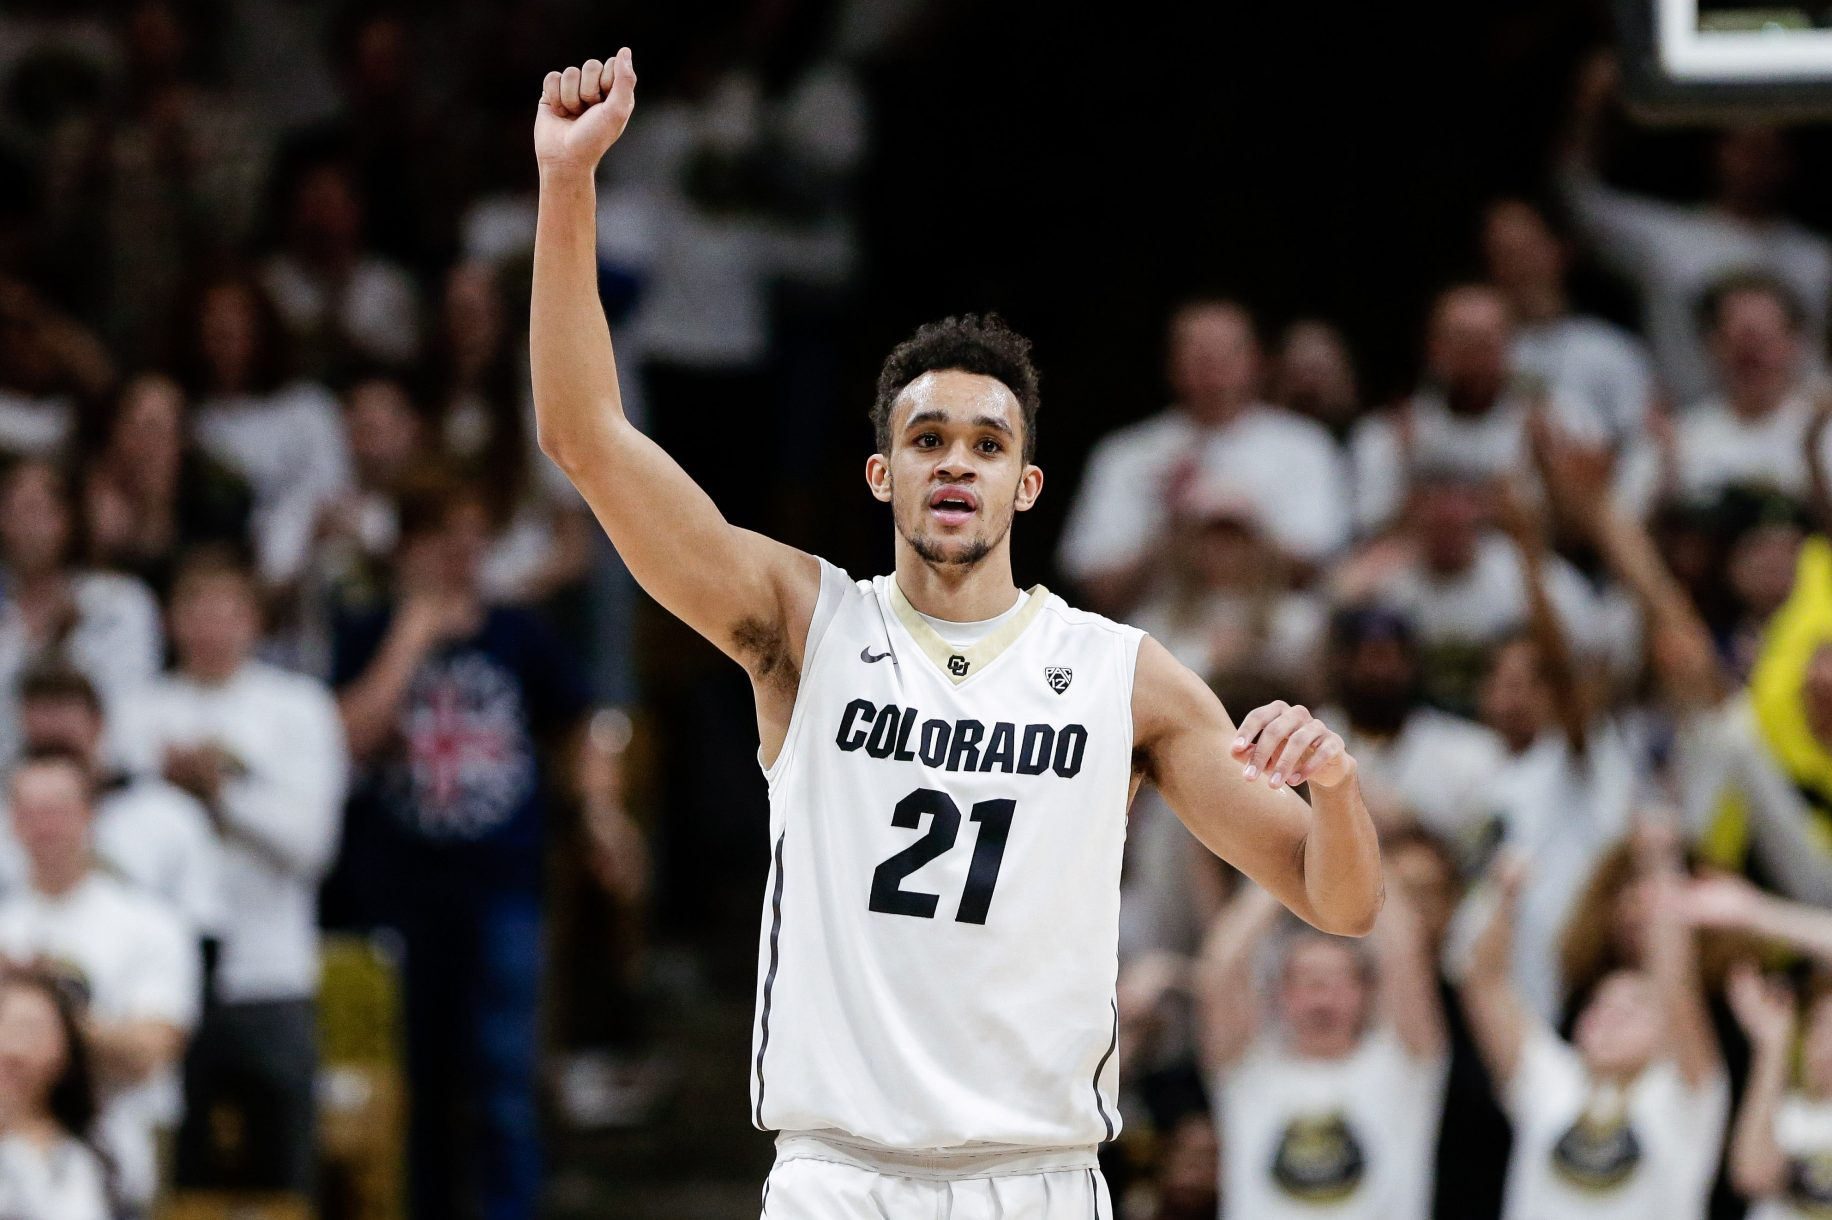 Brooklyn Nets: Scouting Colorado Guard Derrick White 1